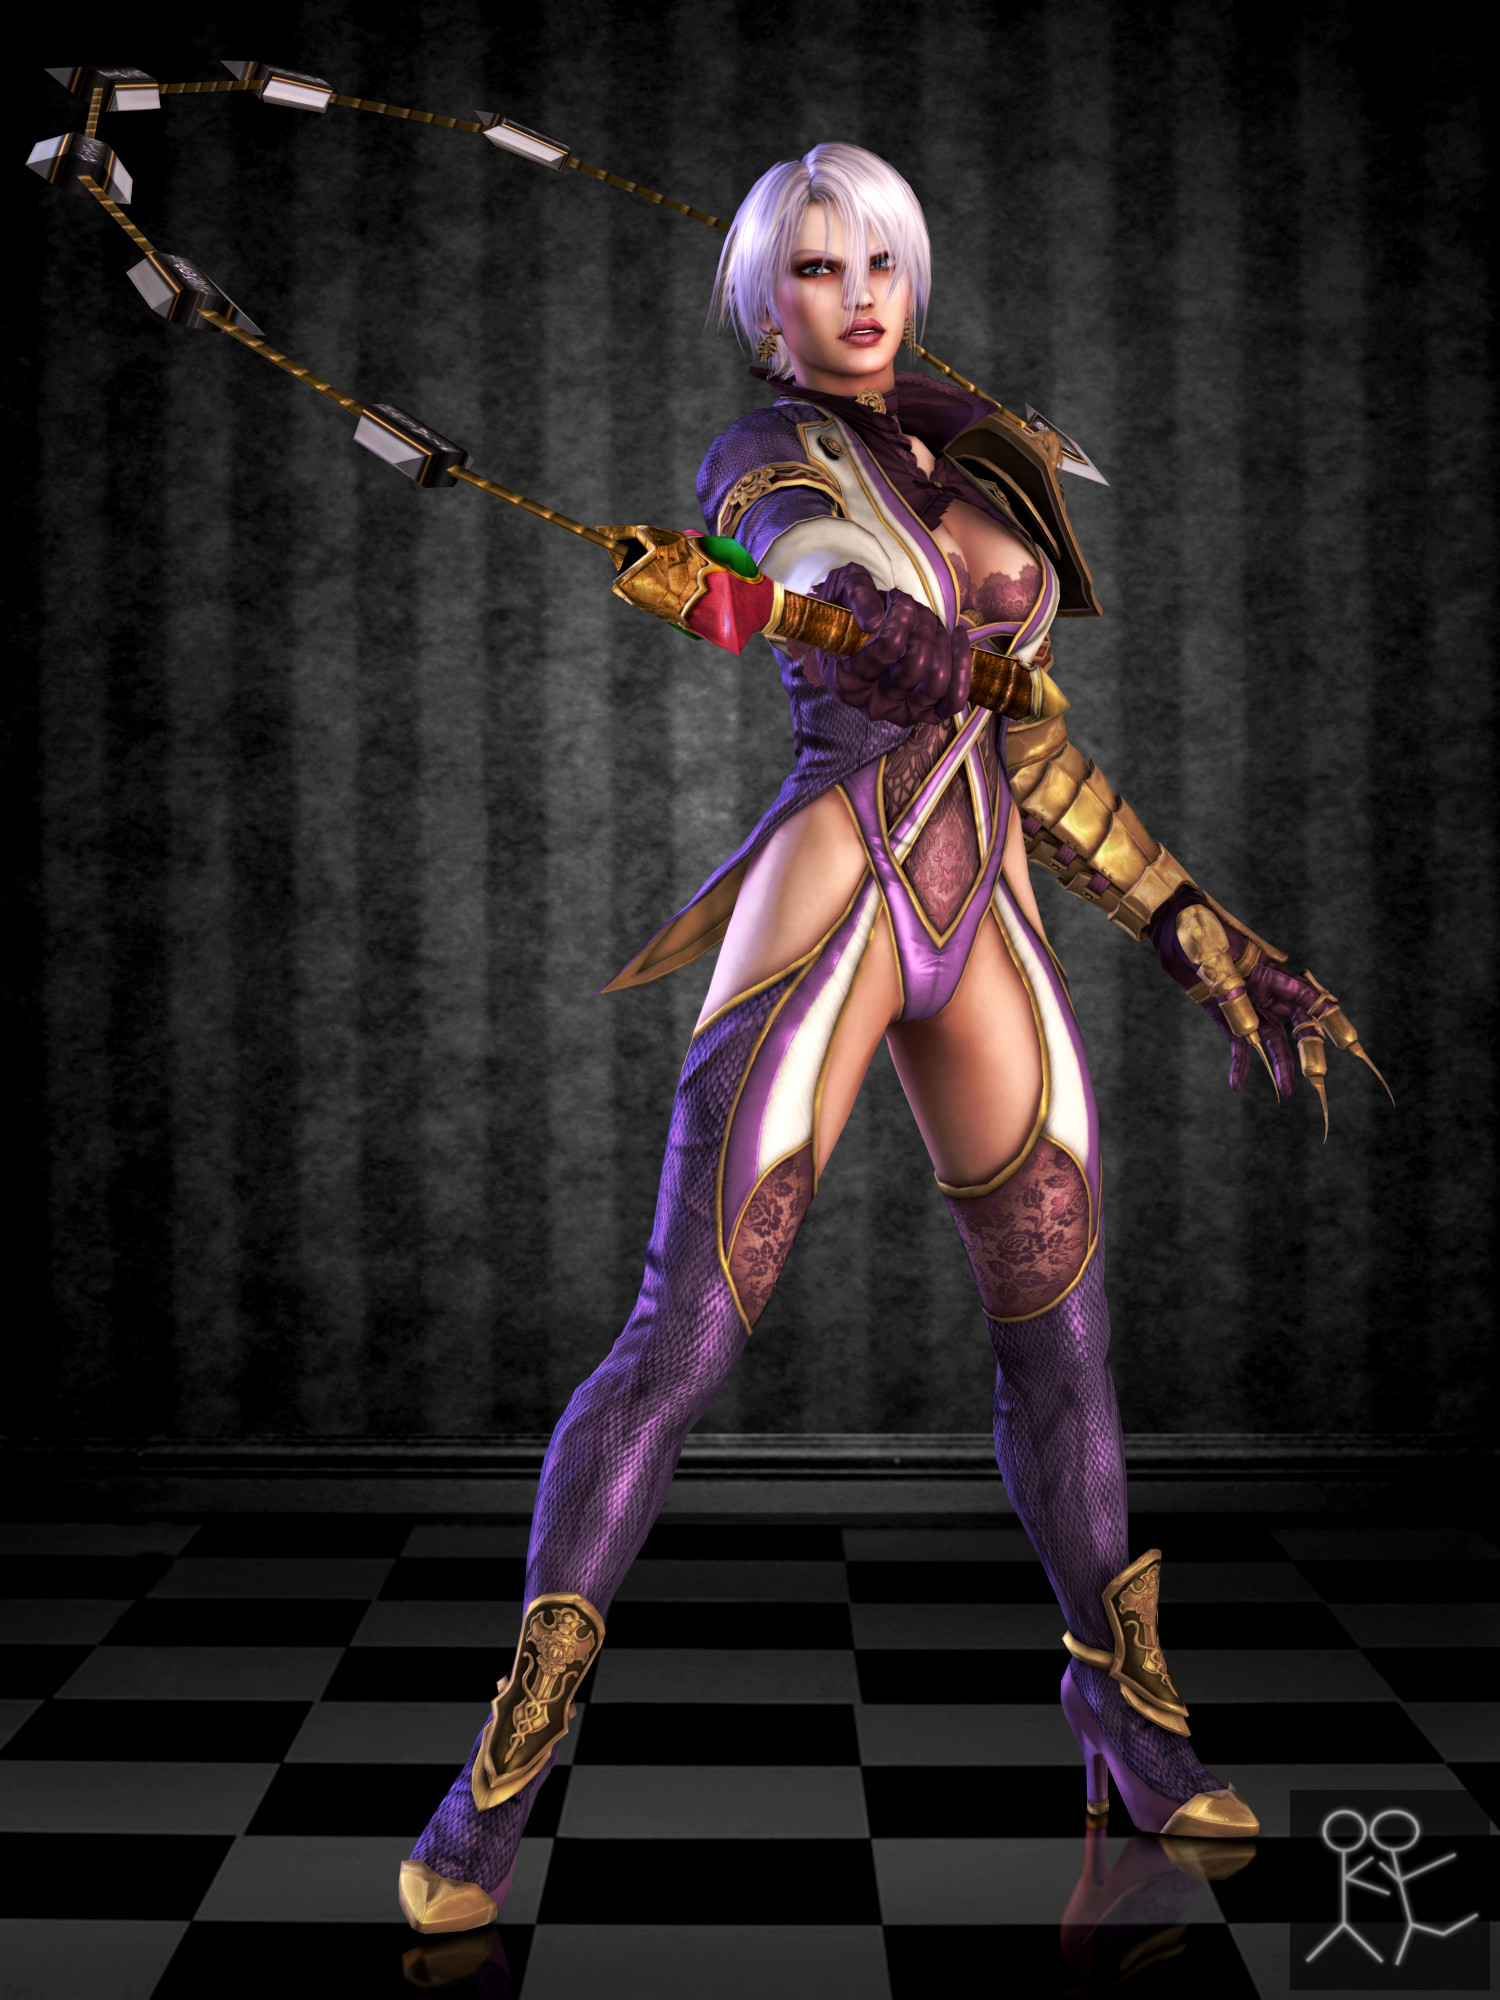 Ivy Valentine Wallpapers 54 Images